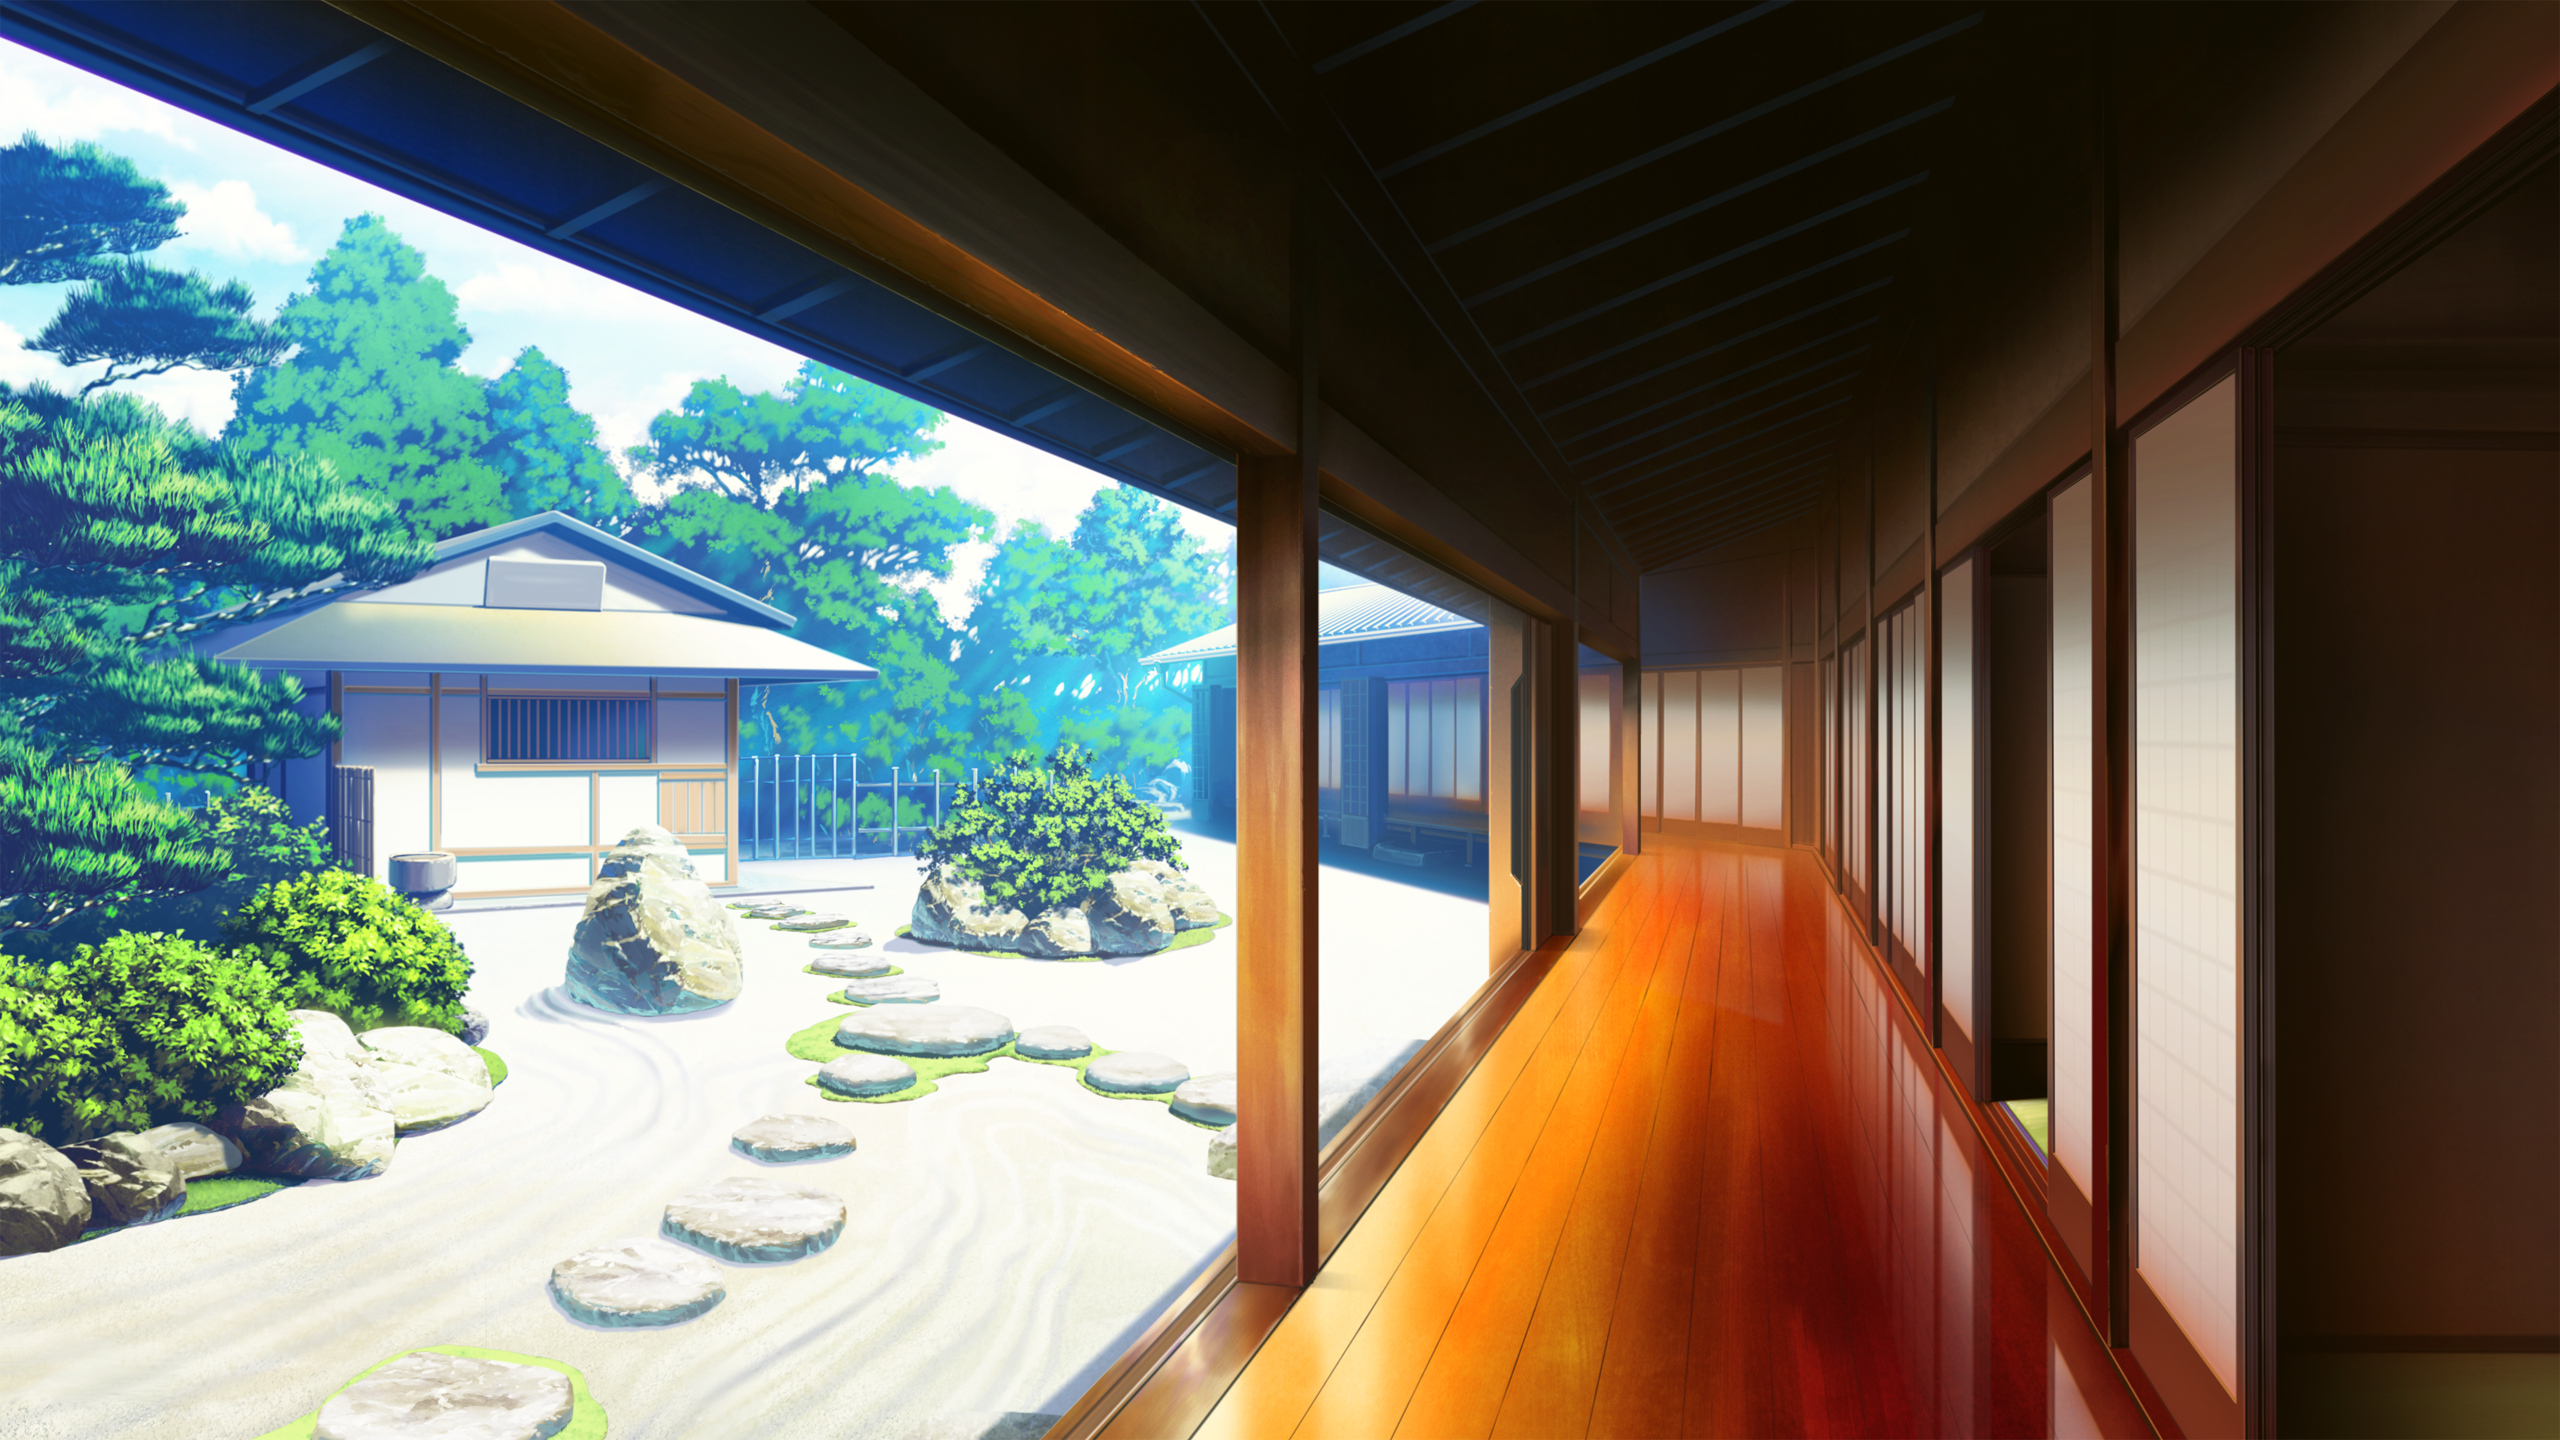 Displaying 16 gt images for japanese anime house